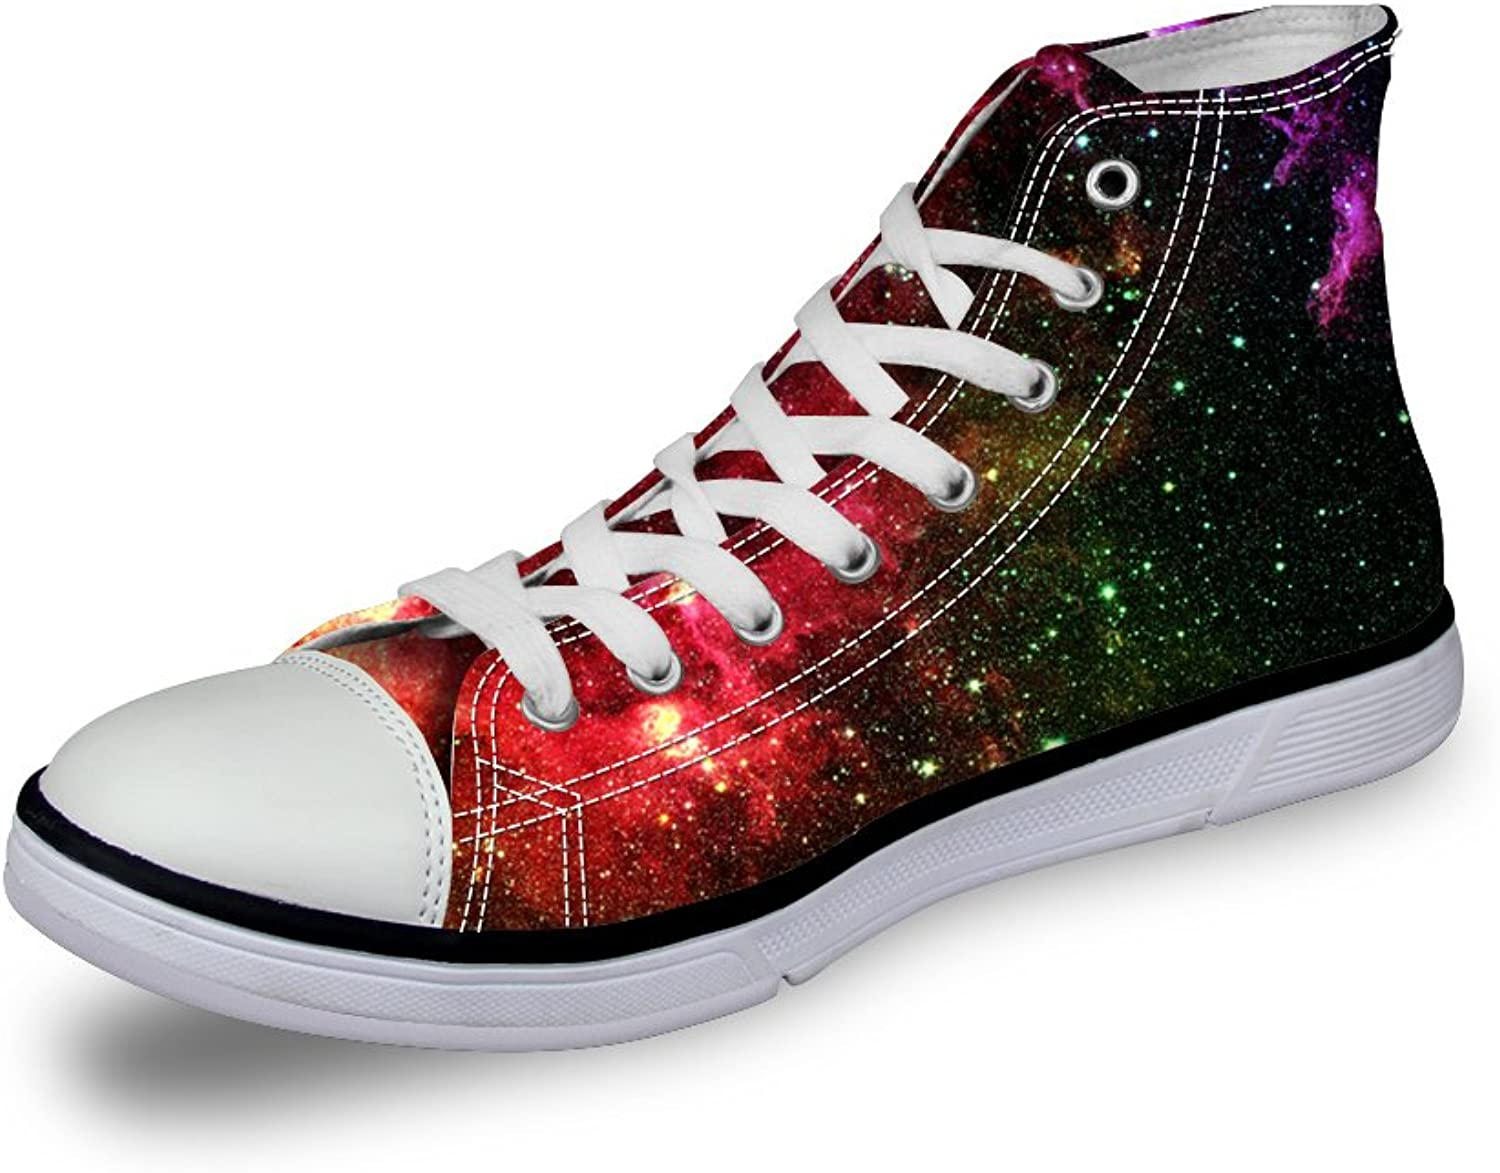 Frestree Stylish High Top Sneakers for Women Running shoes